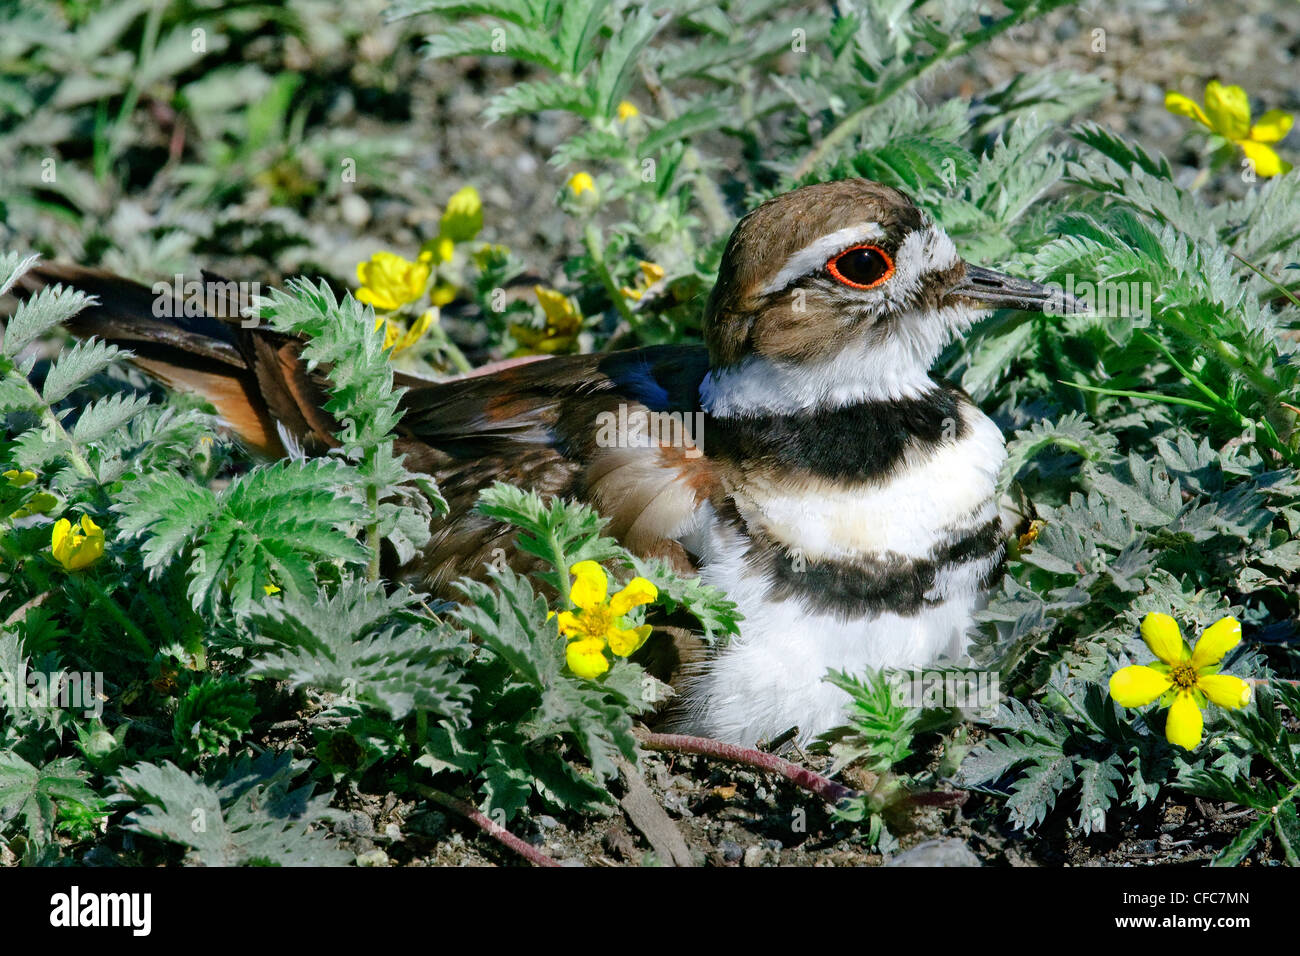 Killdeer (Charadrius vociferus) incubating a clutch of four eggs, southern Okanagan Valley, British Columbia - Stock Image